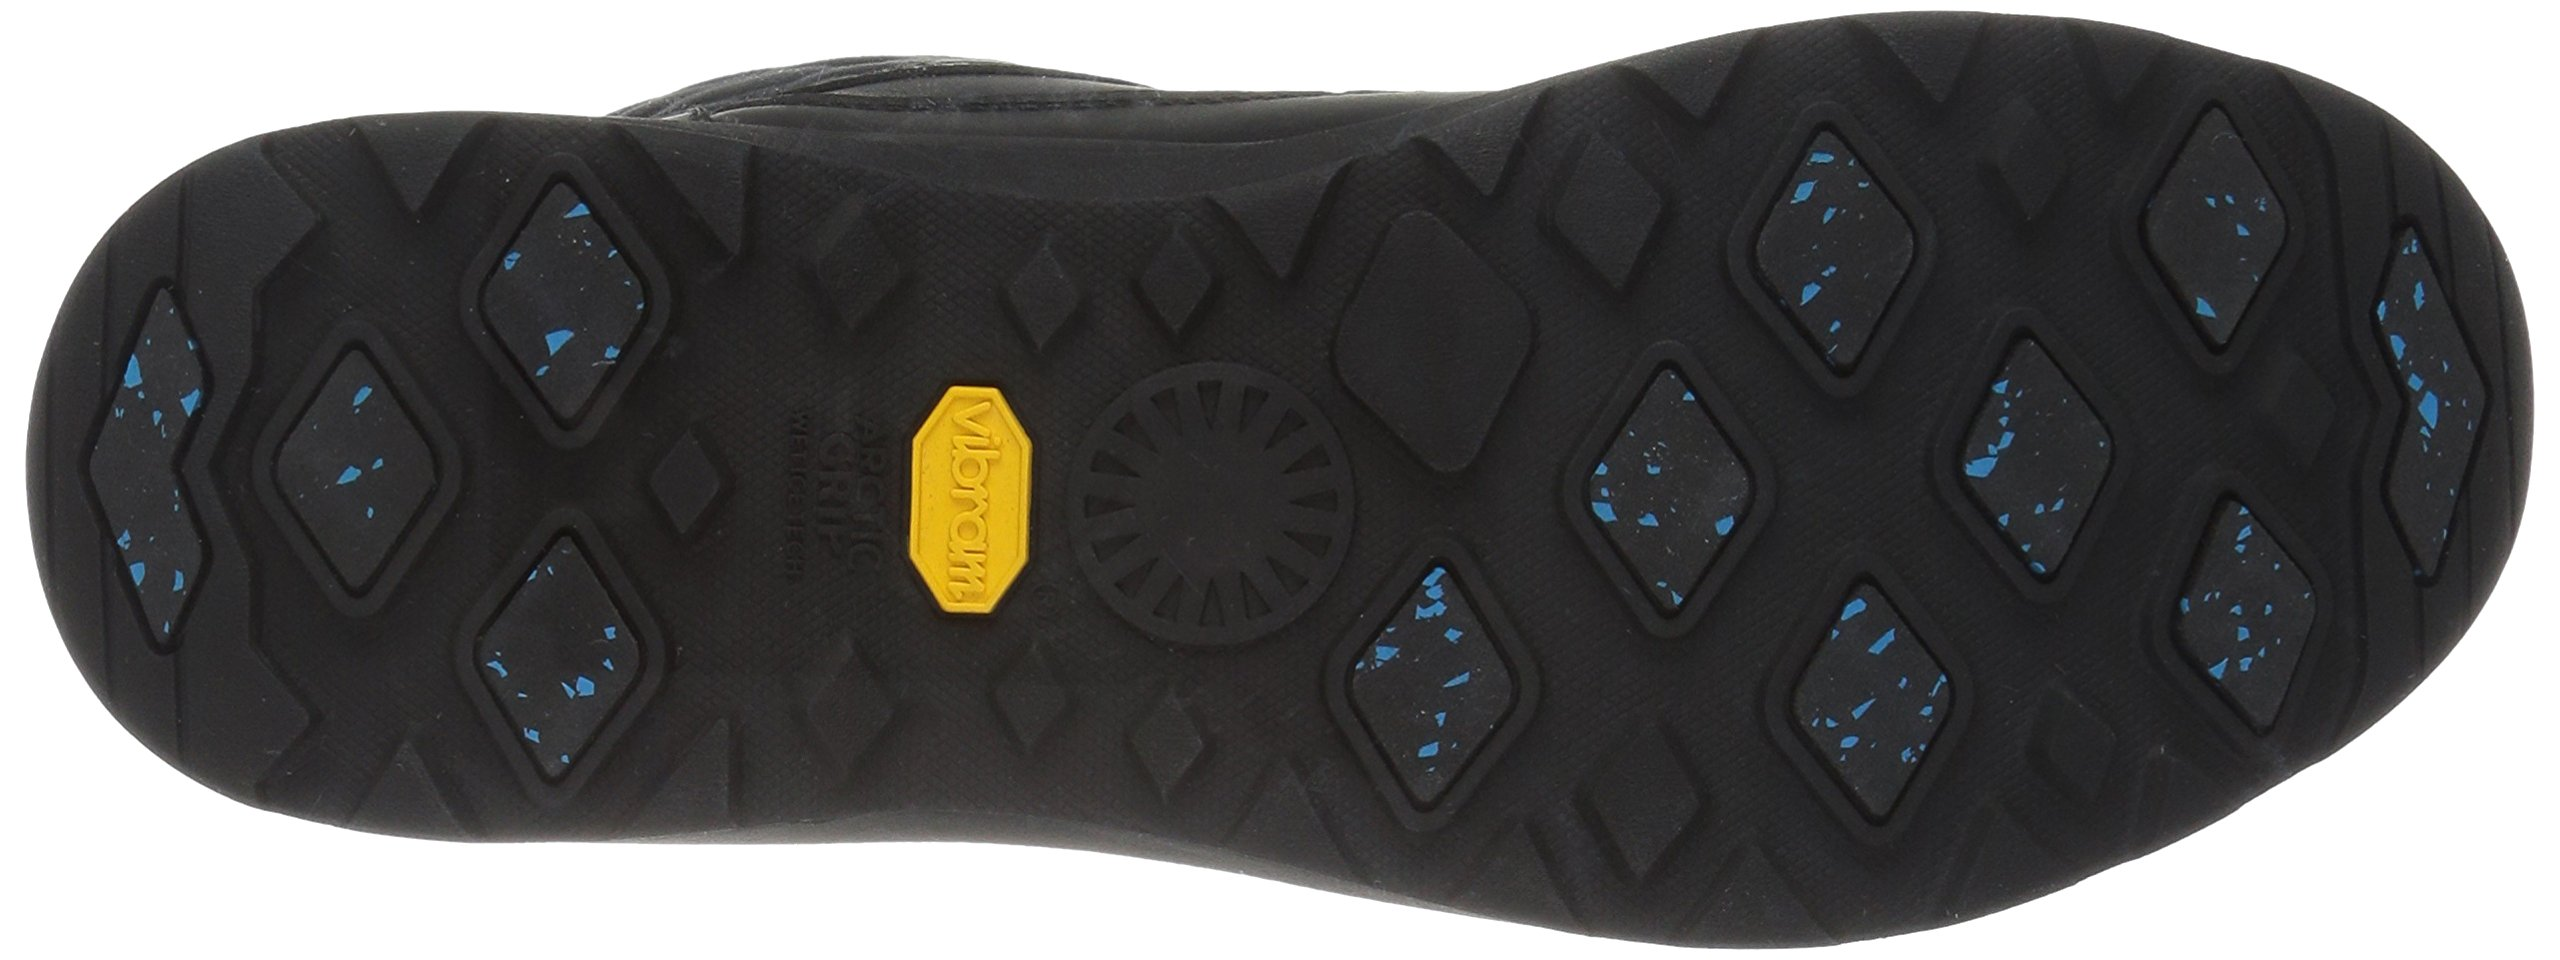 UGG Women's Lachlan Winter Boot, Black, 8 M US by UGG (Image #3)